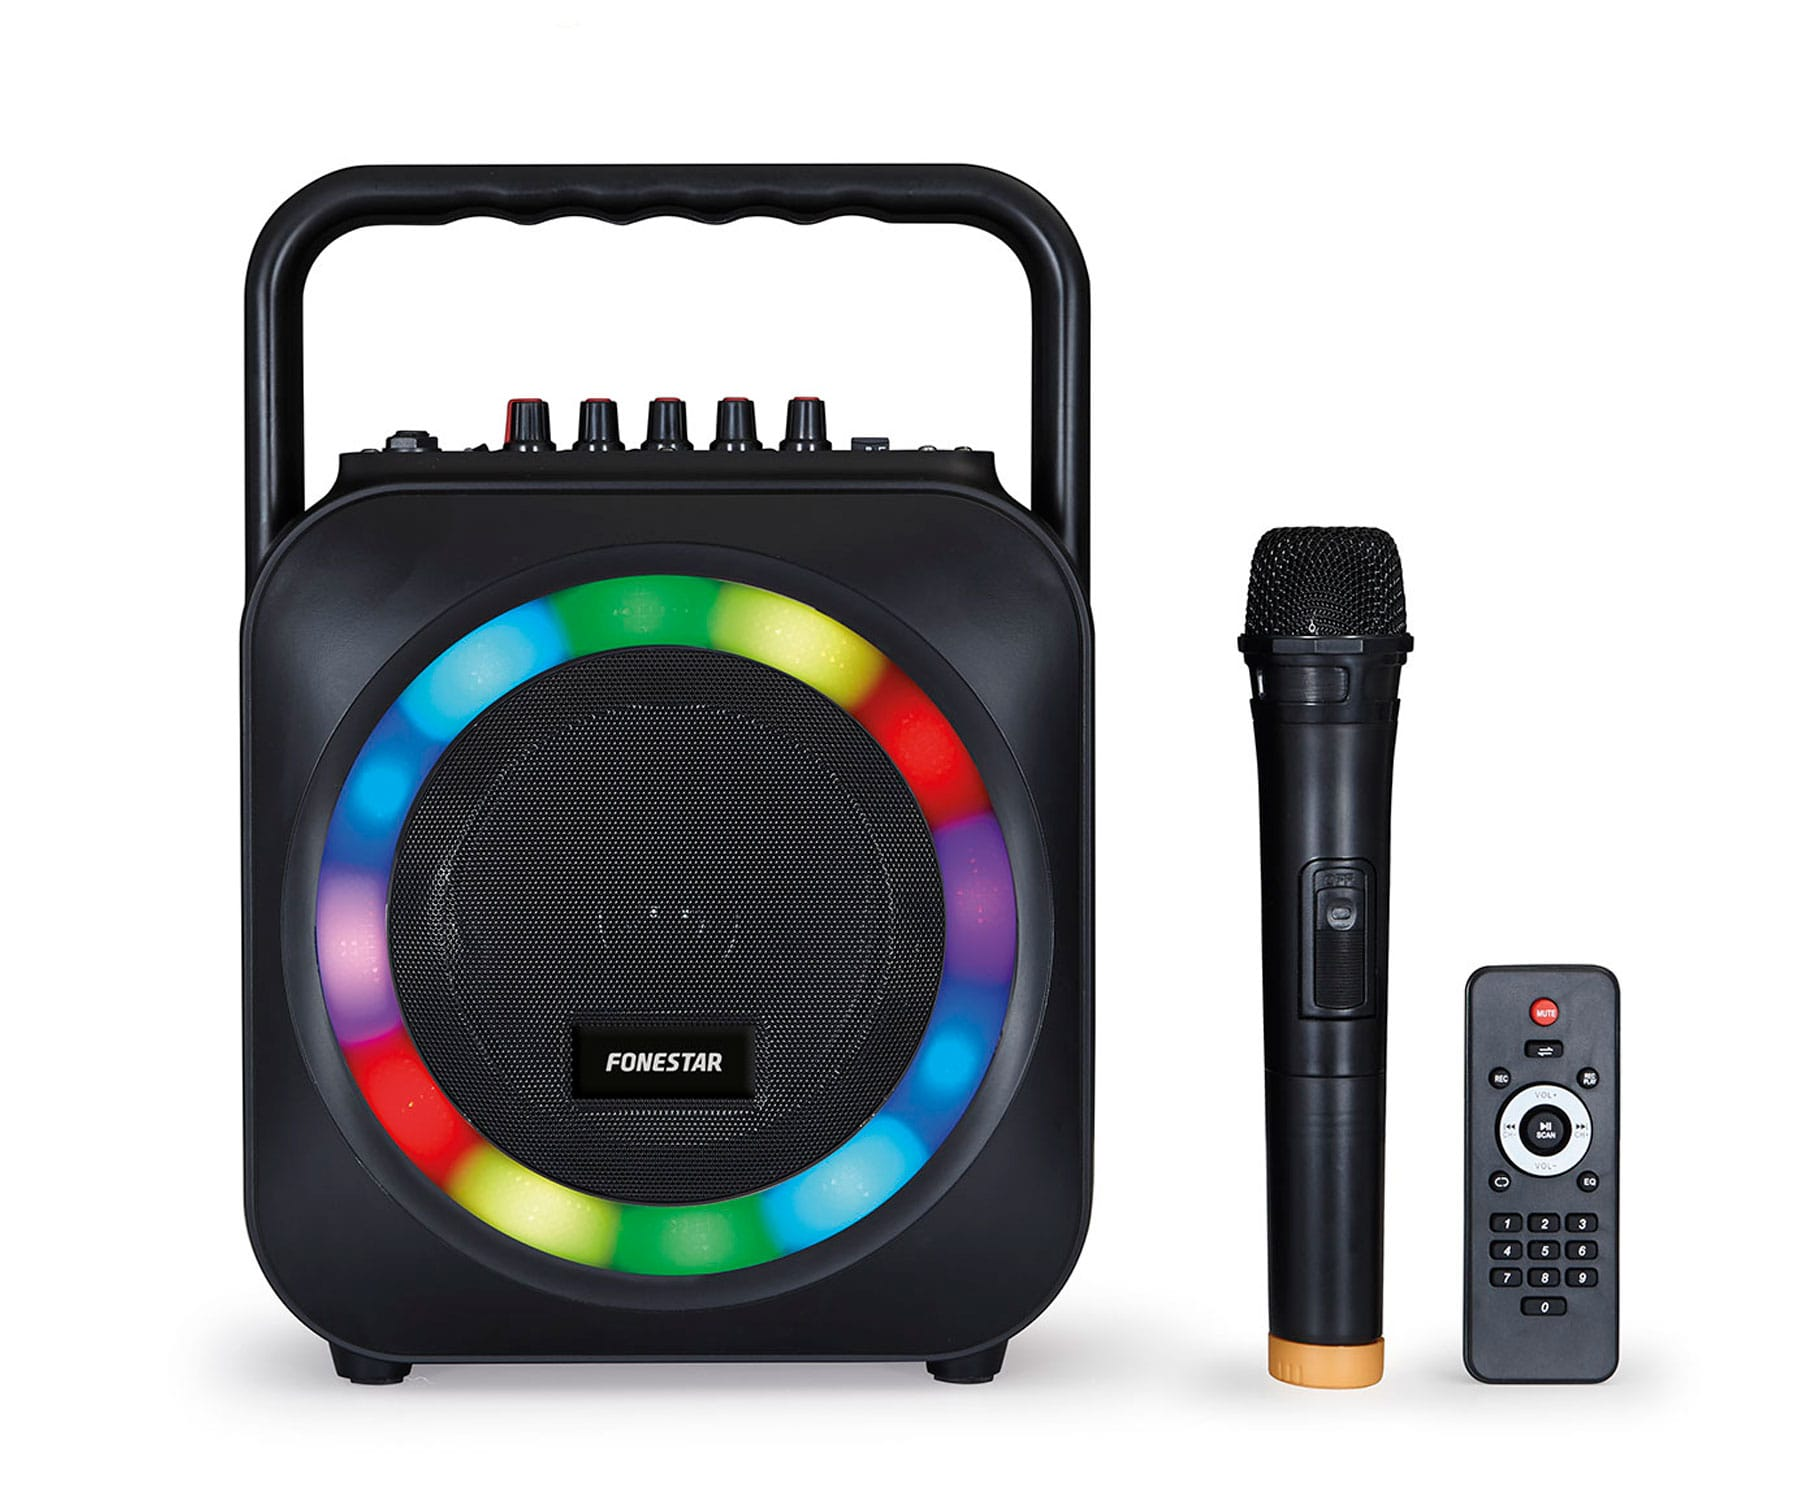 FONESTAR BOX-35LED GRAN HERMANO: REVOLUTION ALTAVOZ PORTÁTIL KARAOKE BLUETOOTH USB SD LUCES LED - BOX-35LED